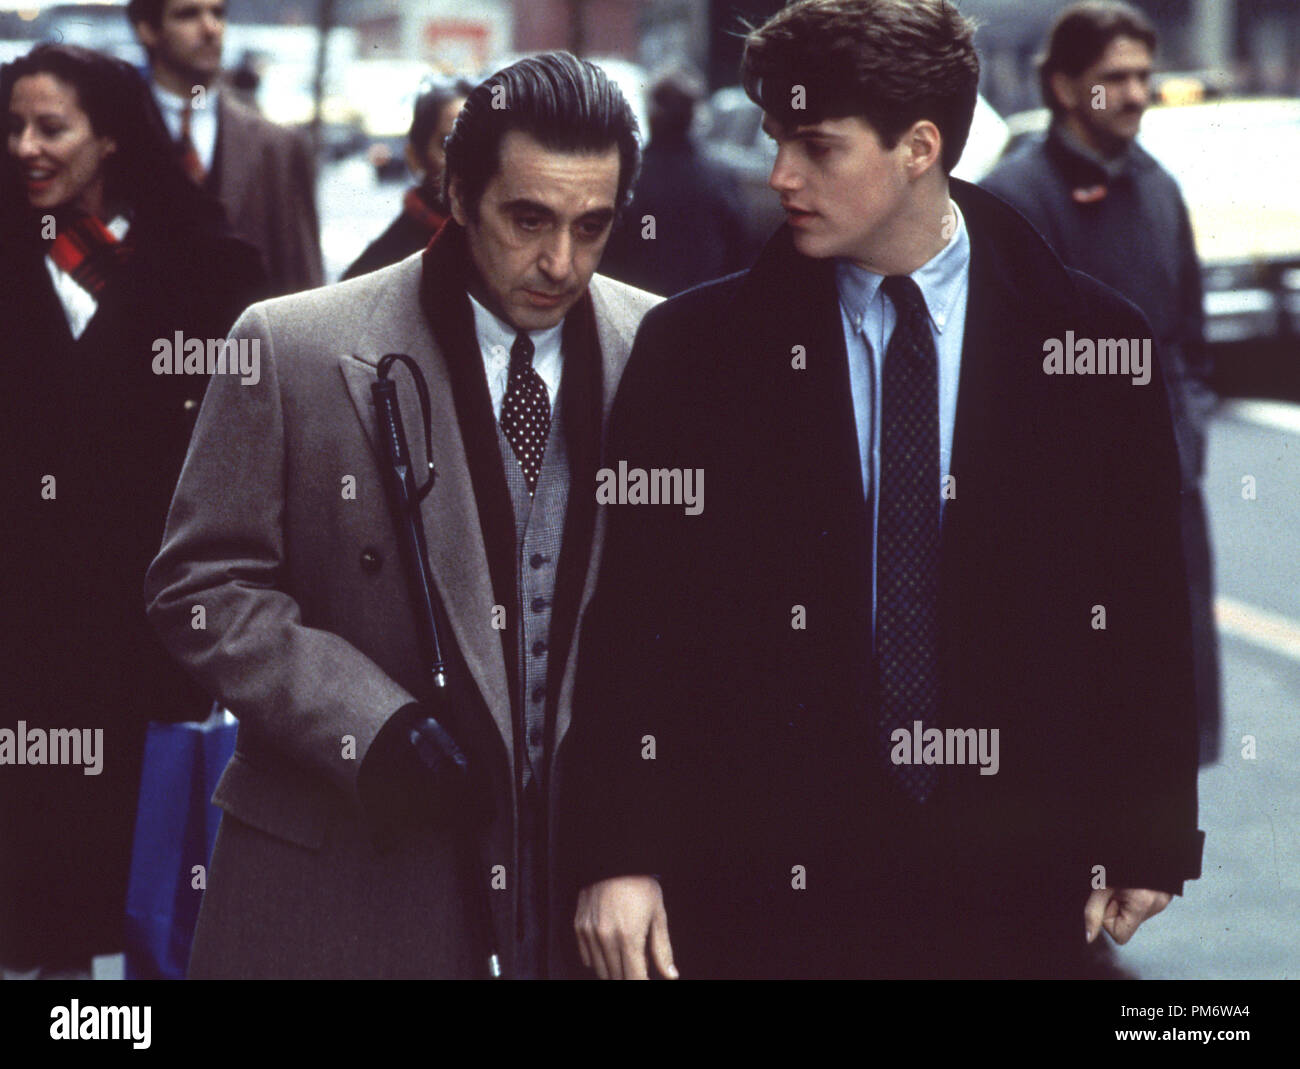 Film Still From Scent Of A Woman Al Pacino And Chris O Donnell C 1992 Universal Photo Credit M Aronowitz Stock Photo Alamy